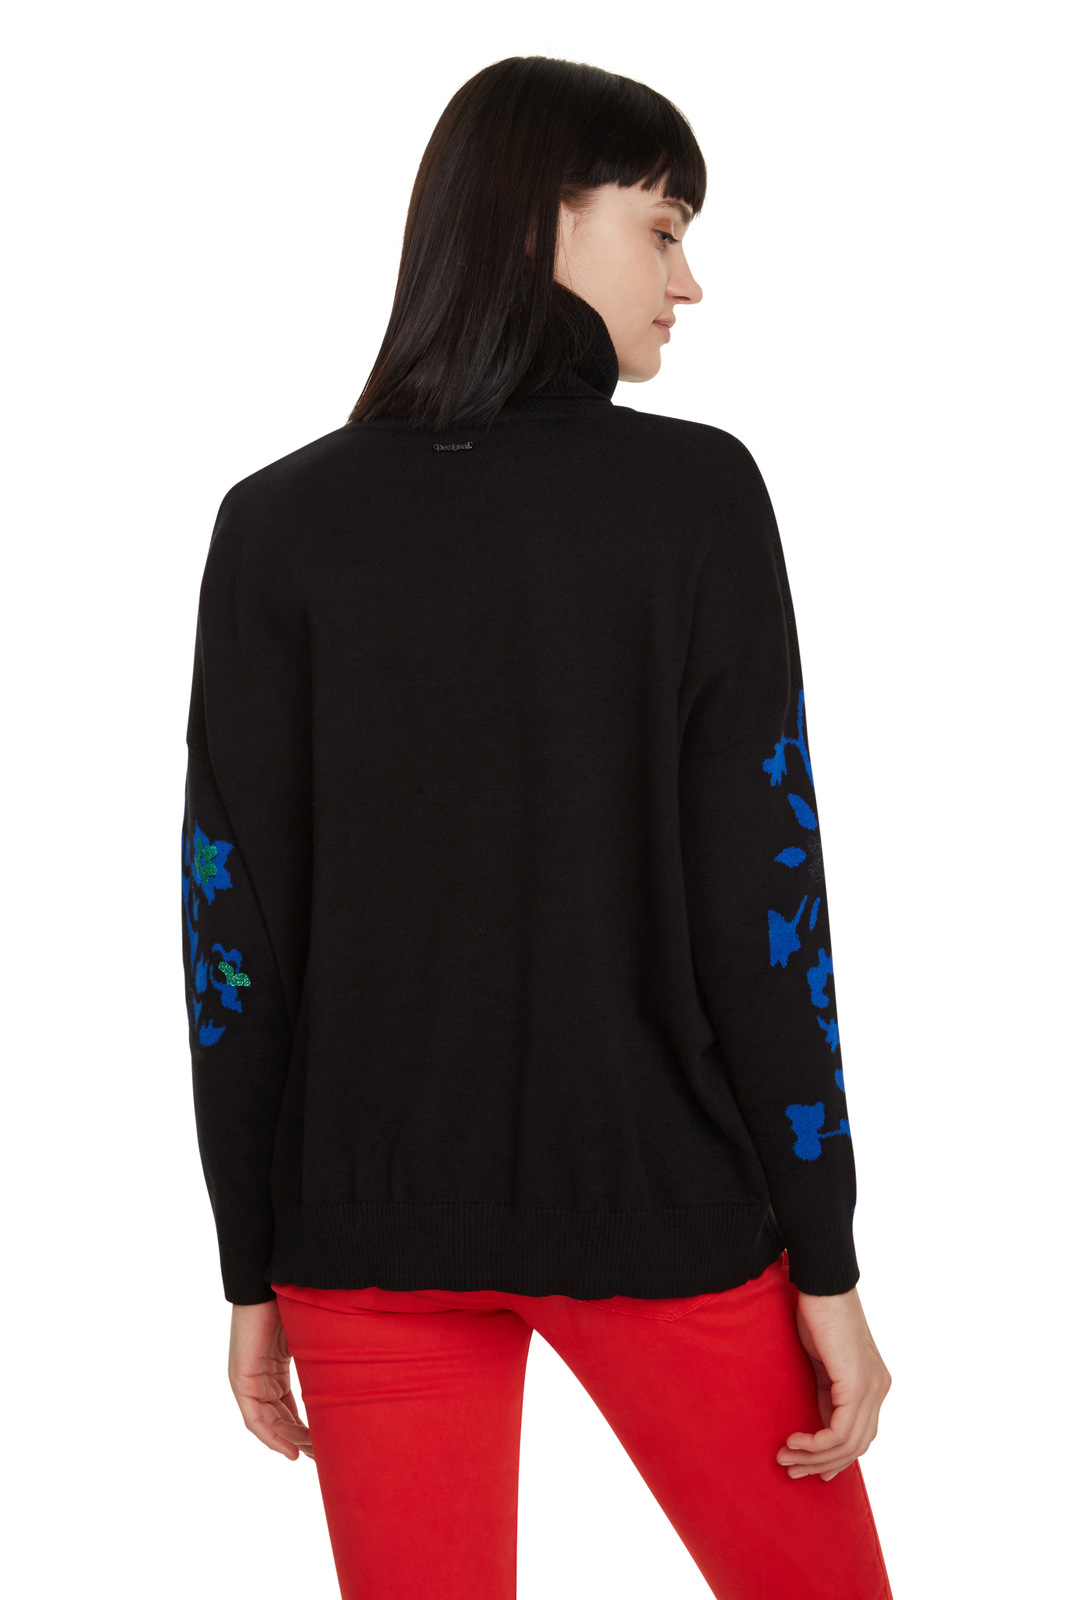 Desigual black turtleneck Jers Barrie with colorful motifs